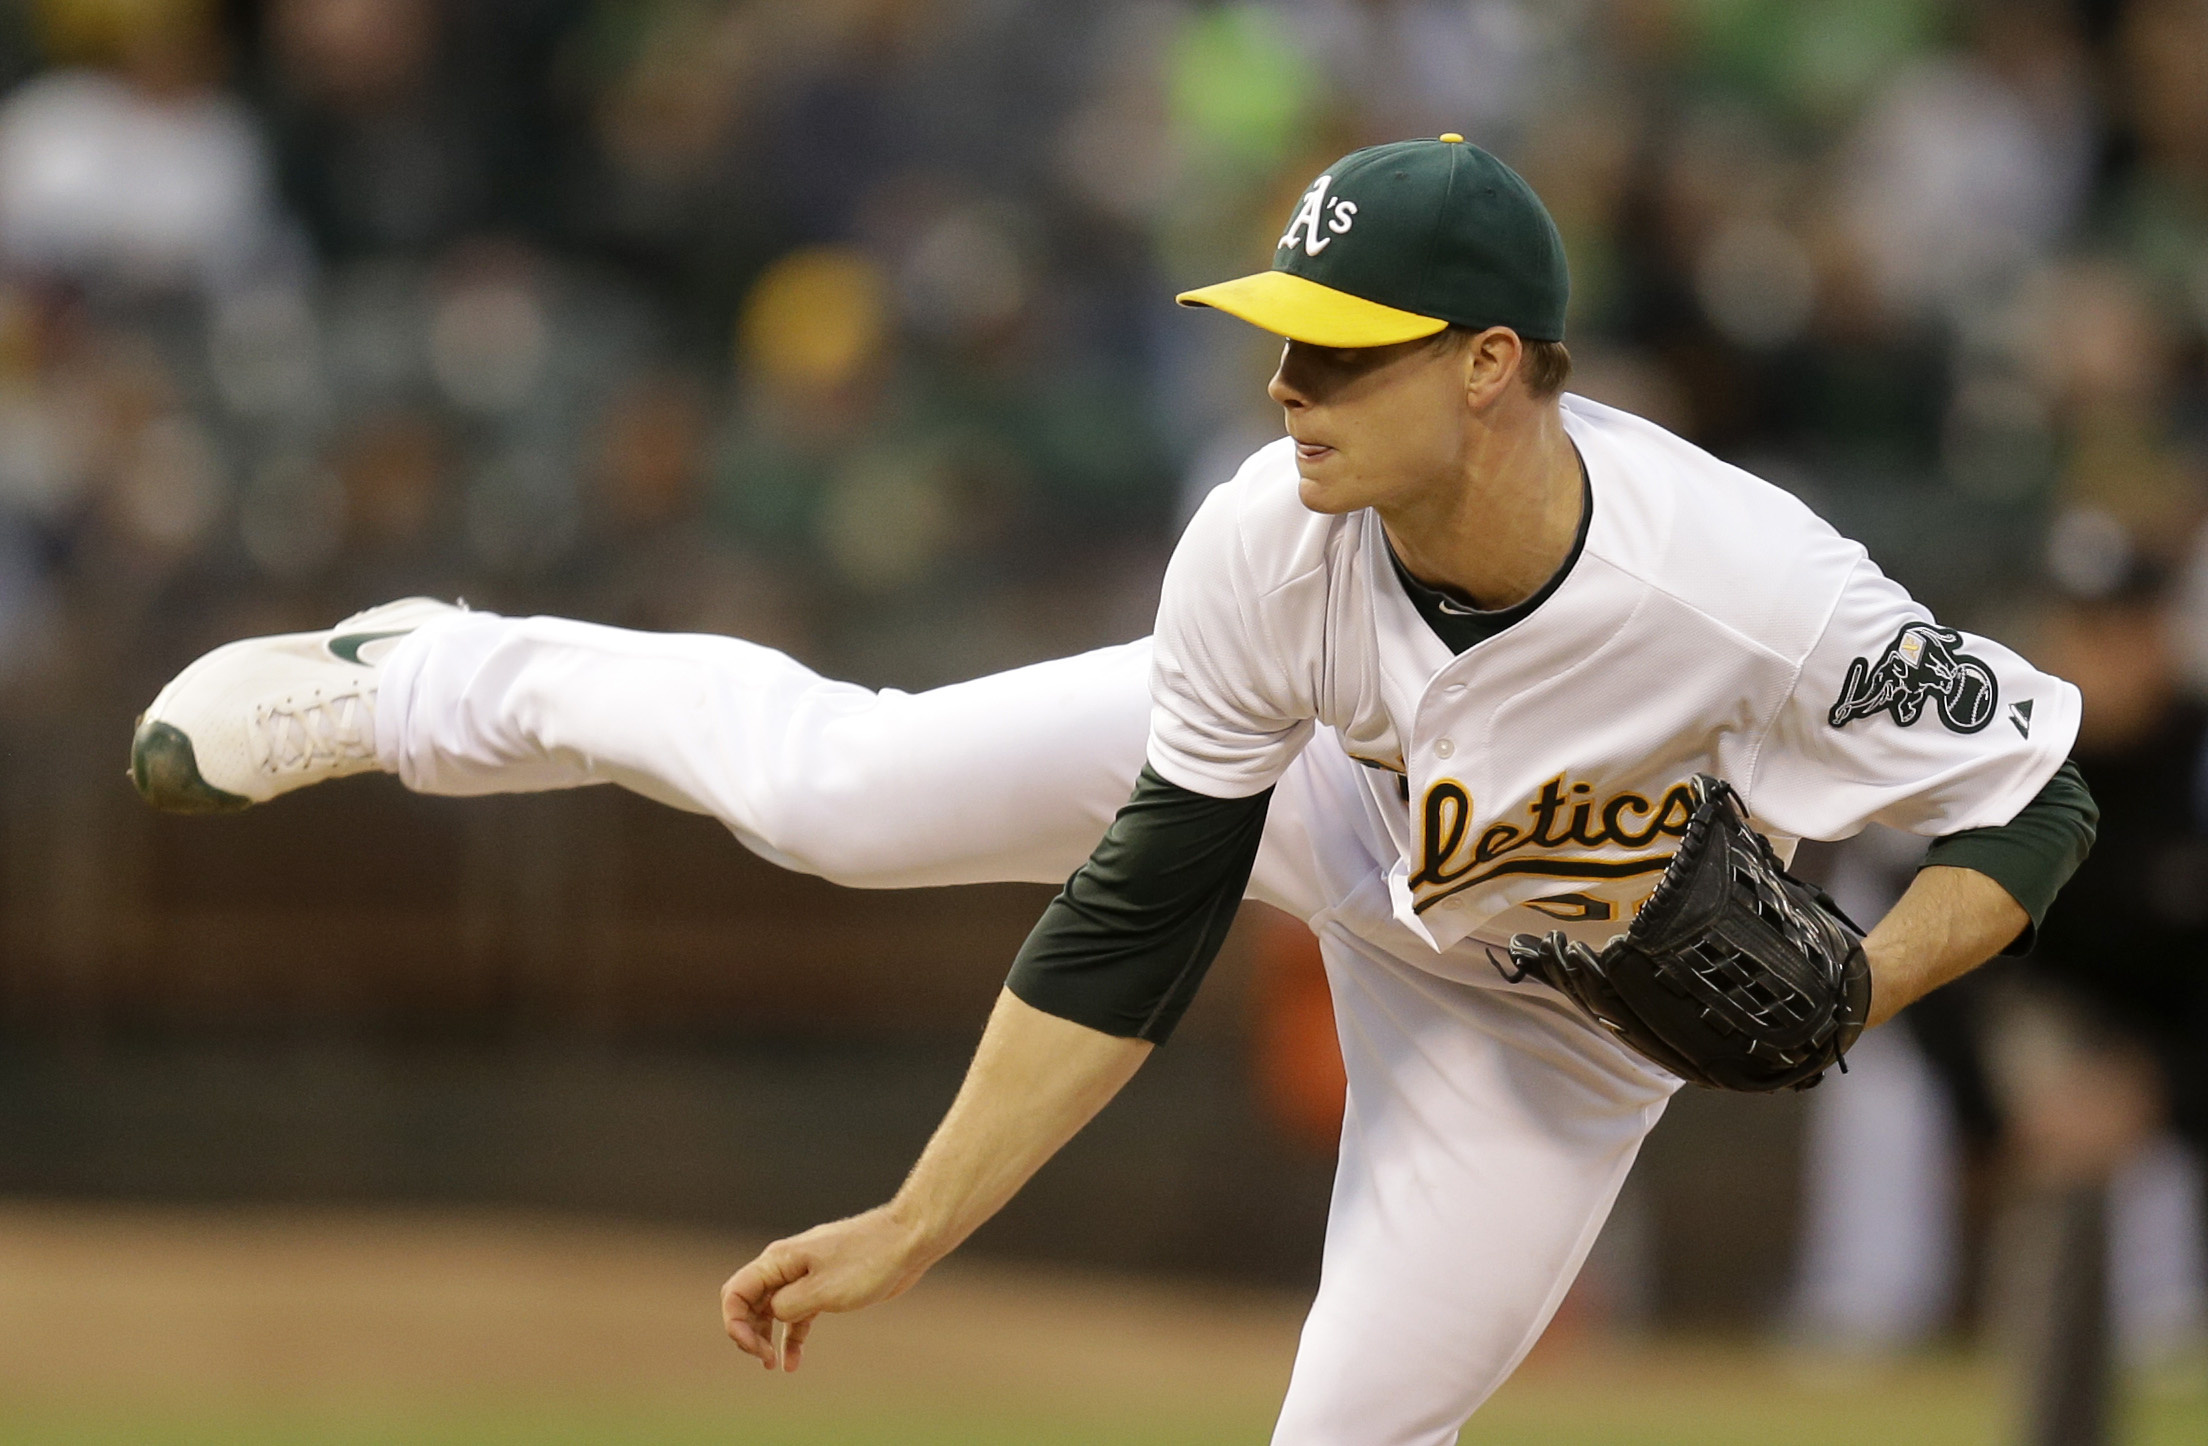 Paxton takes shutout into 8th, Mariners stop A's